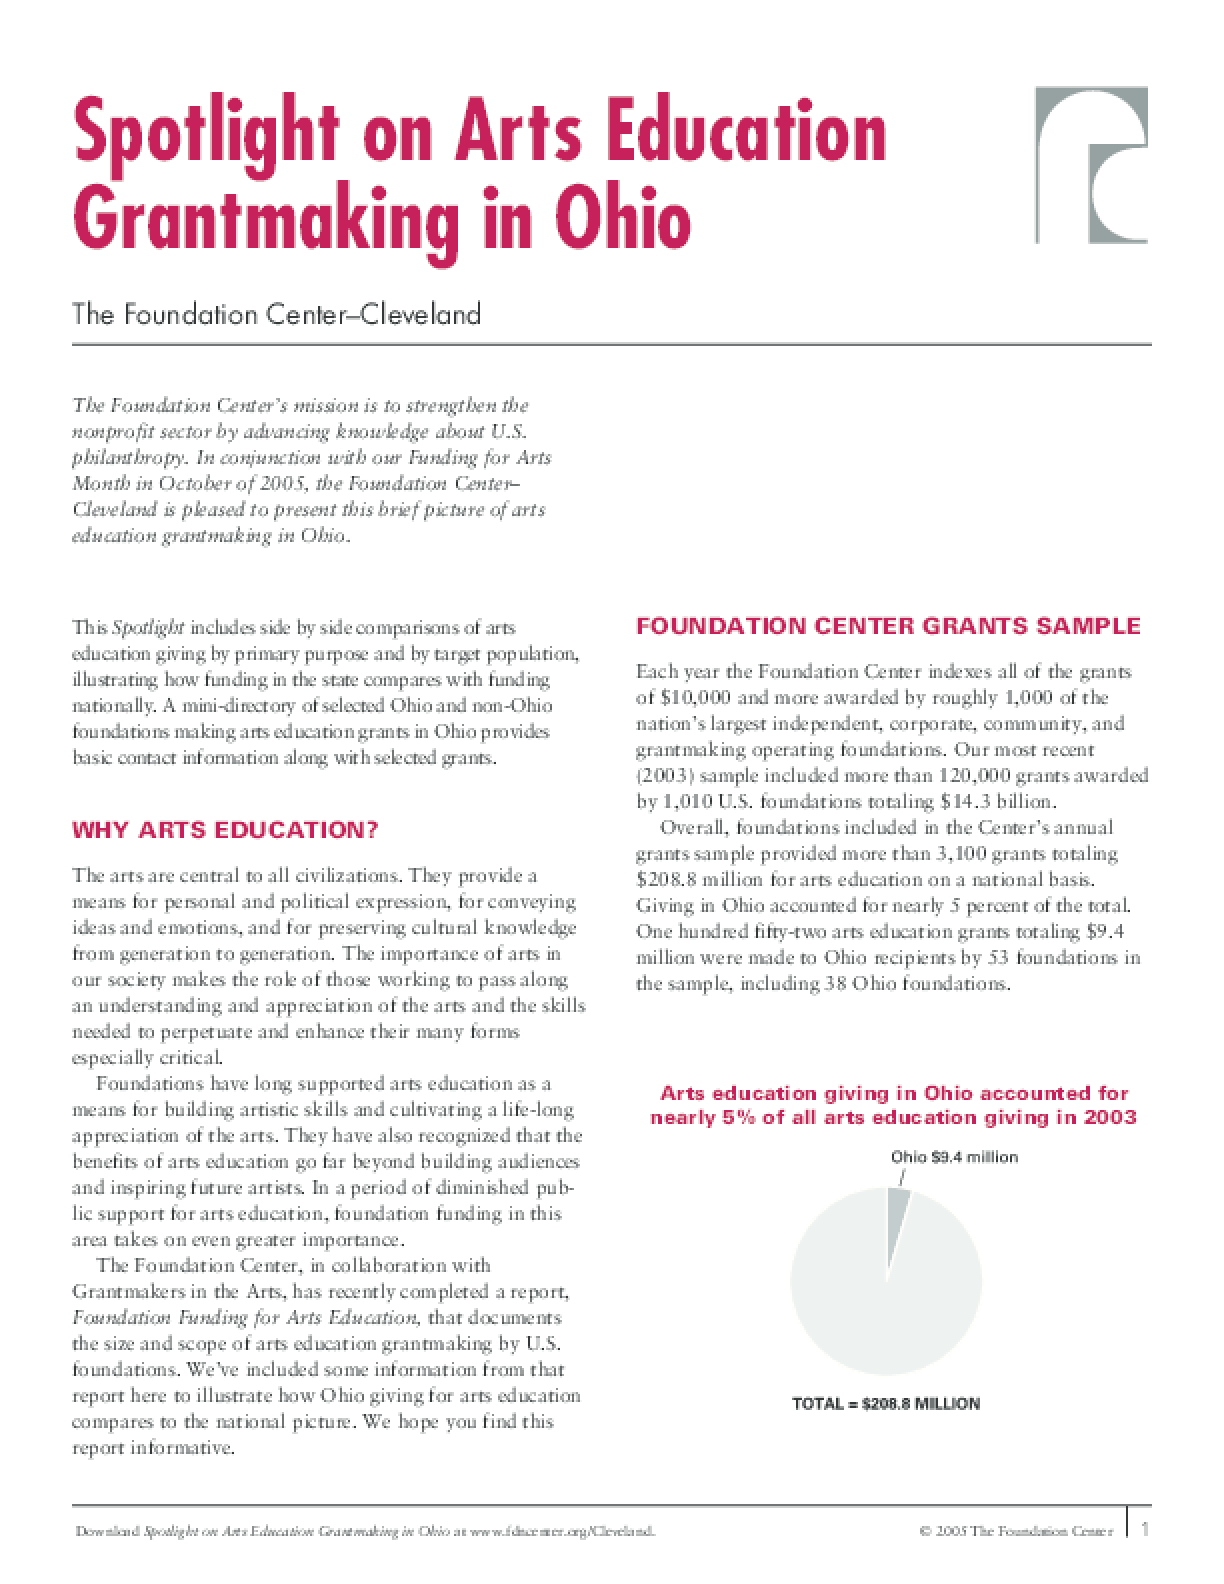 Spotlight on Arts Education Grantmaking in Ohio